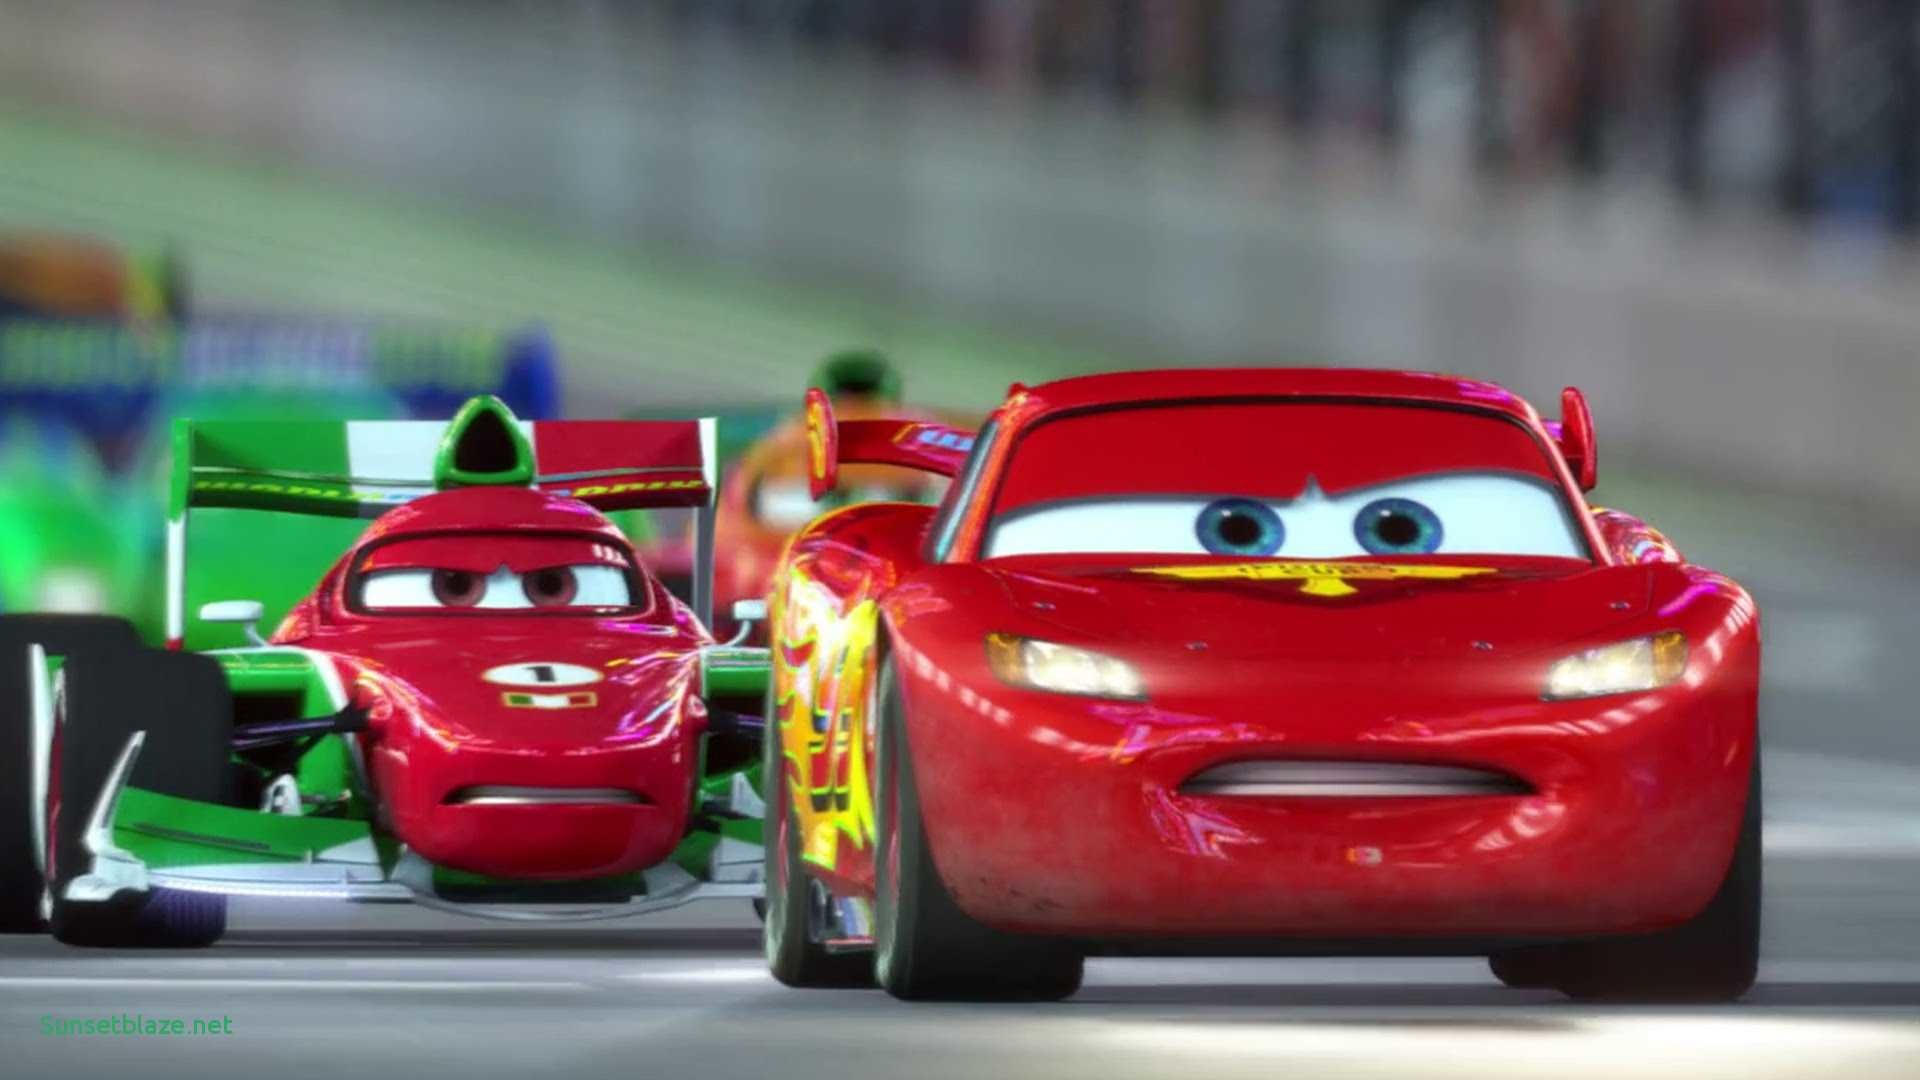 Disney Cars Movie Wallpaper 56 Images